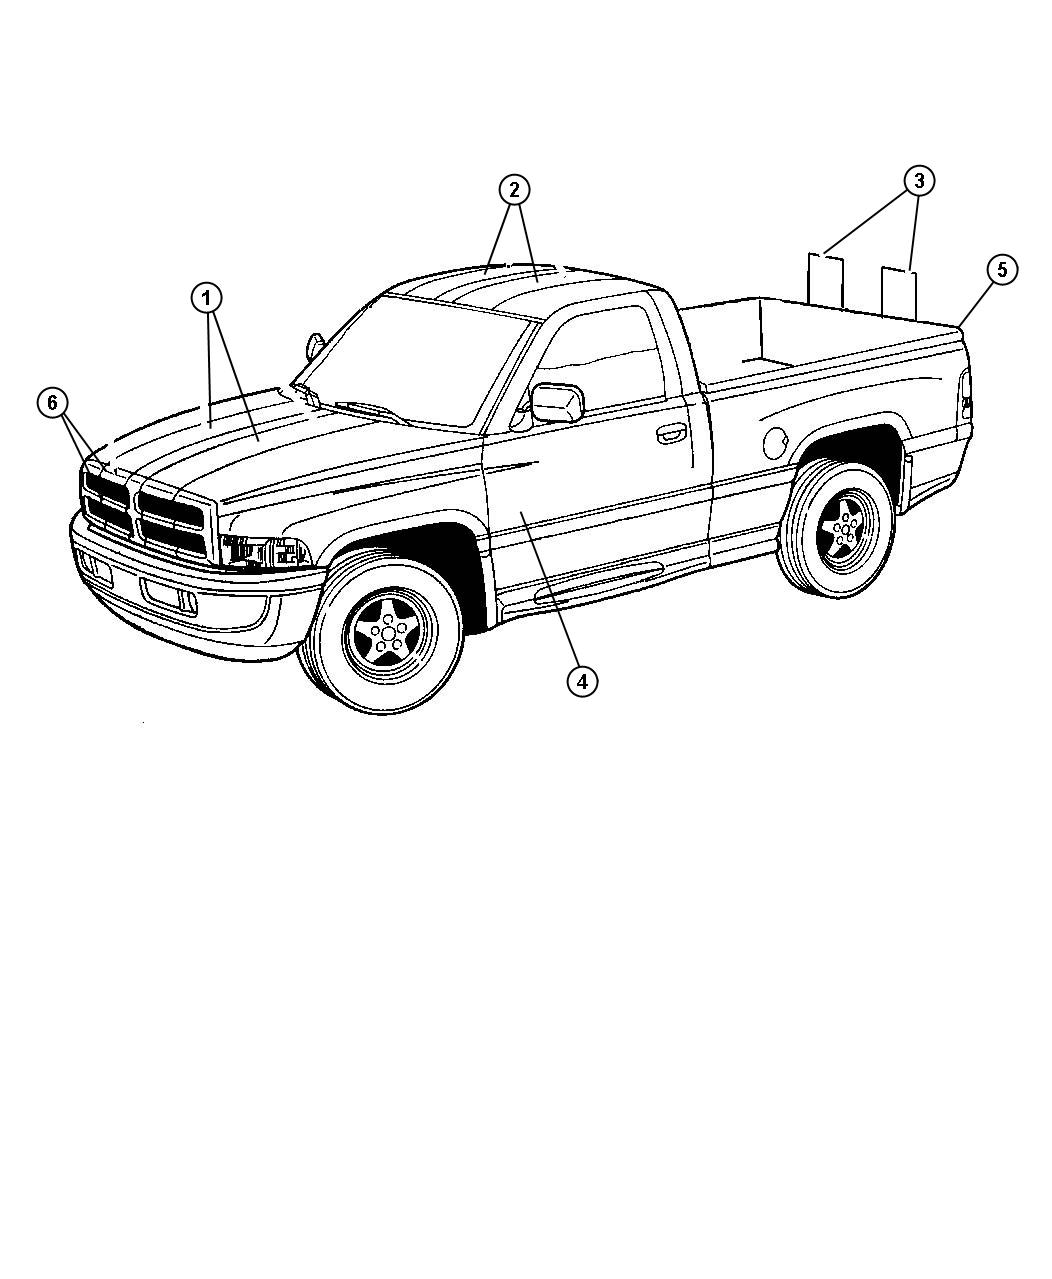 Dodge Ram 3500 Truck Drawing Sketch Coloring Page